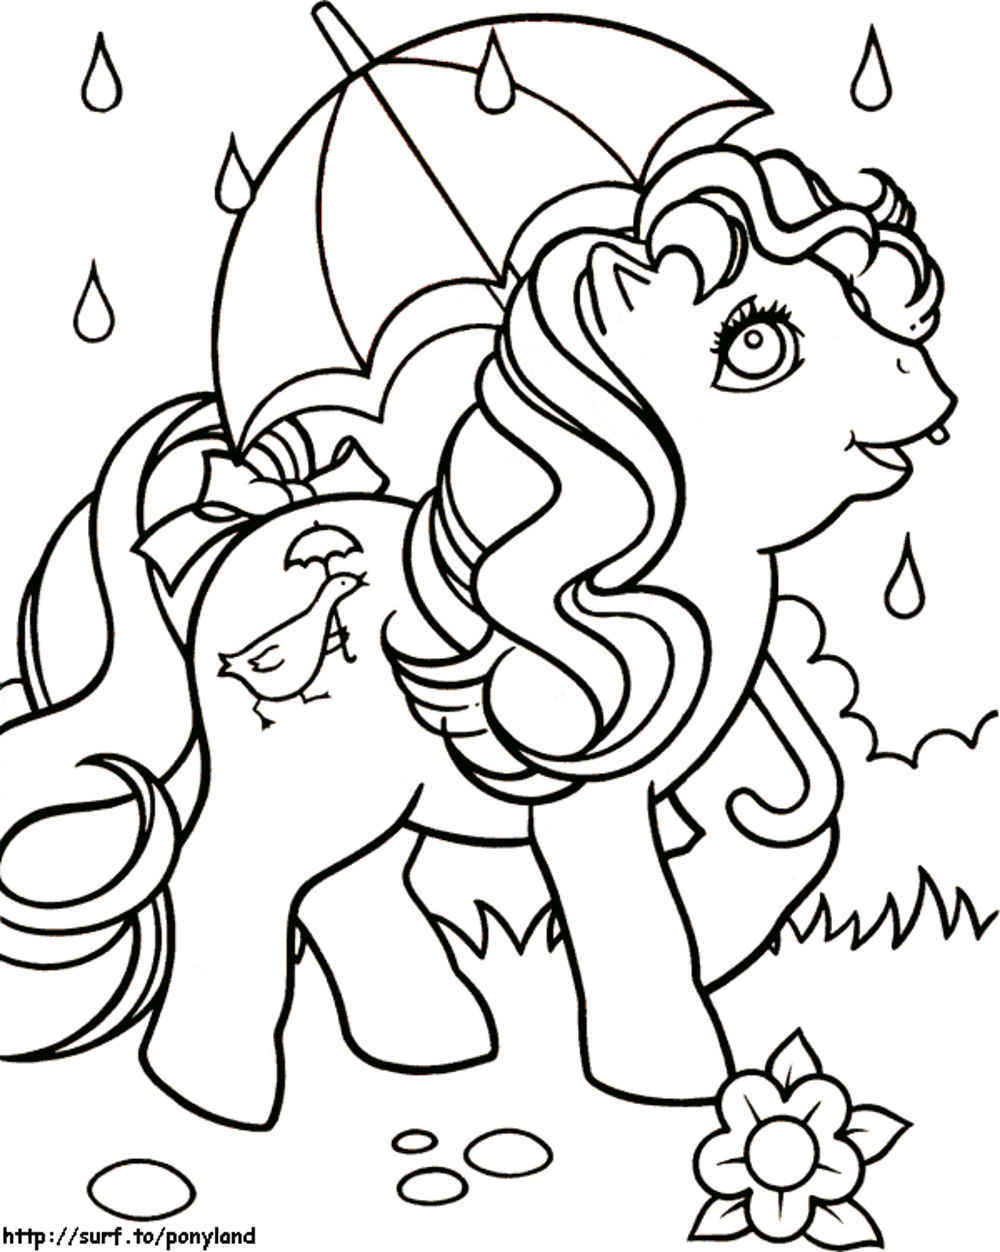 my little pony free coloring bestappsforkids dragon sheet craft pictures of snowman coloring pages My Little Pony Free Coloring Page